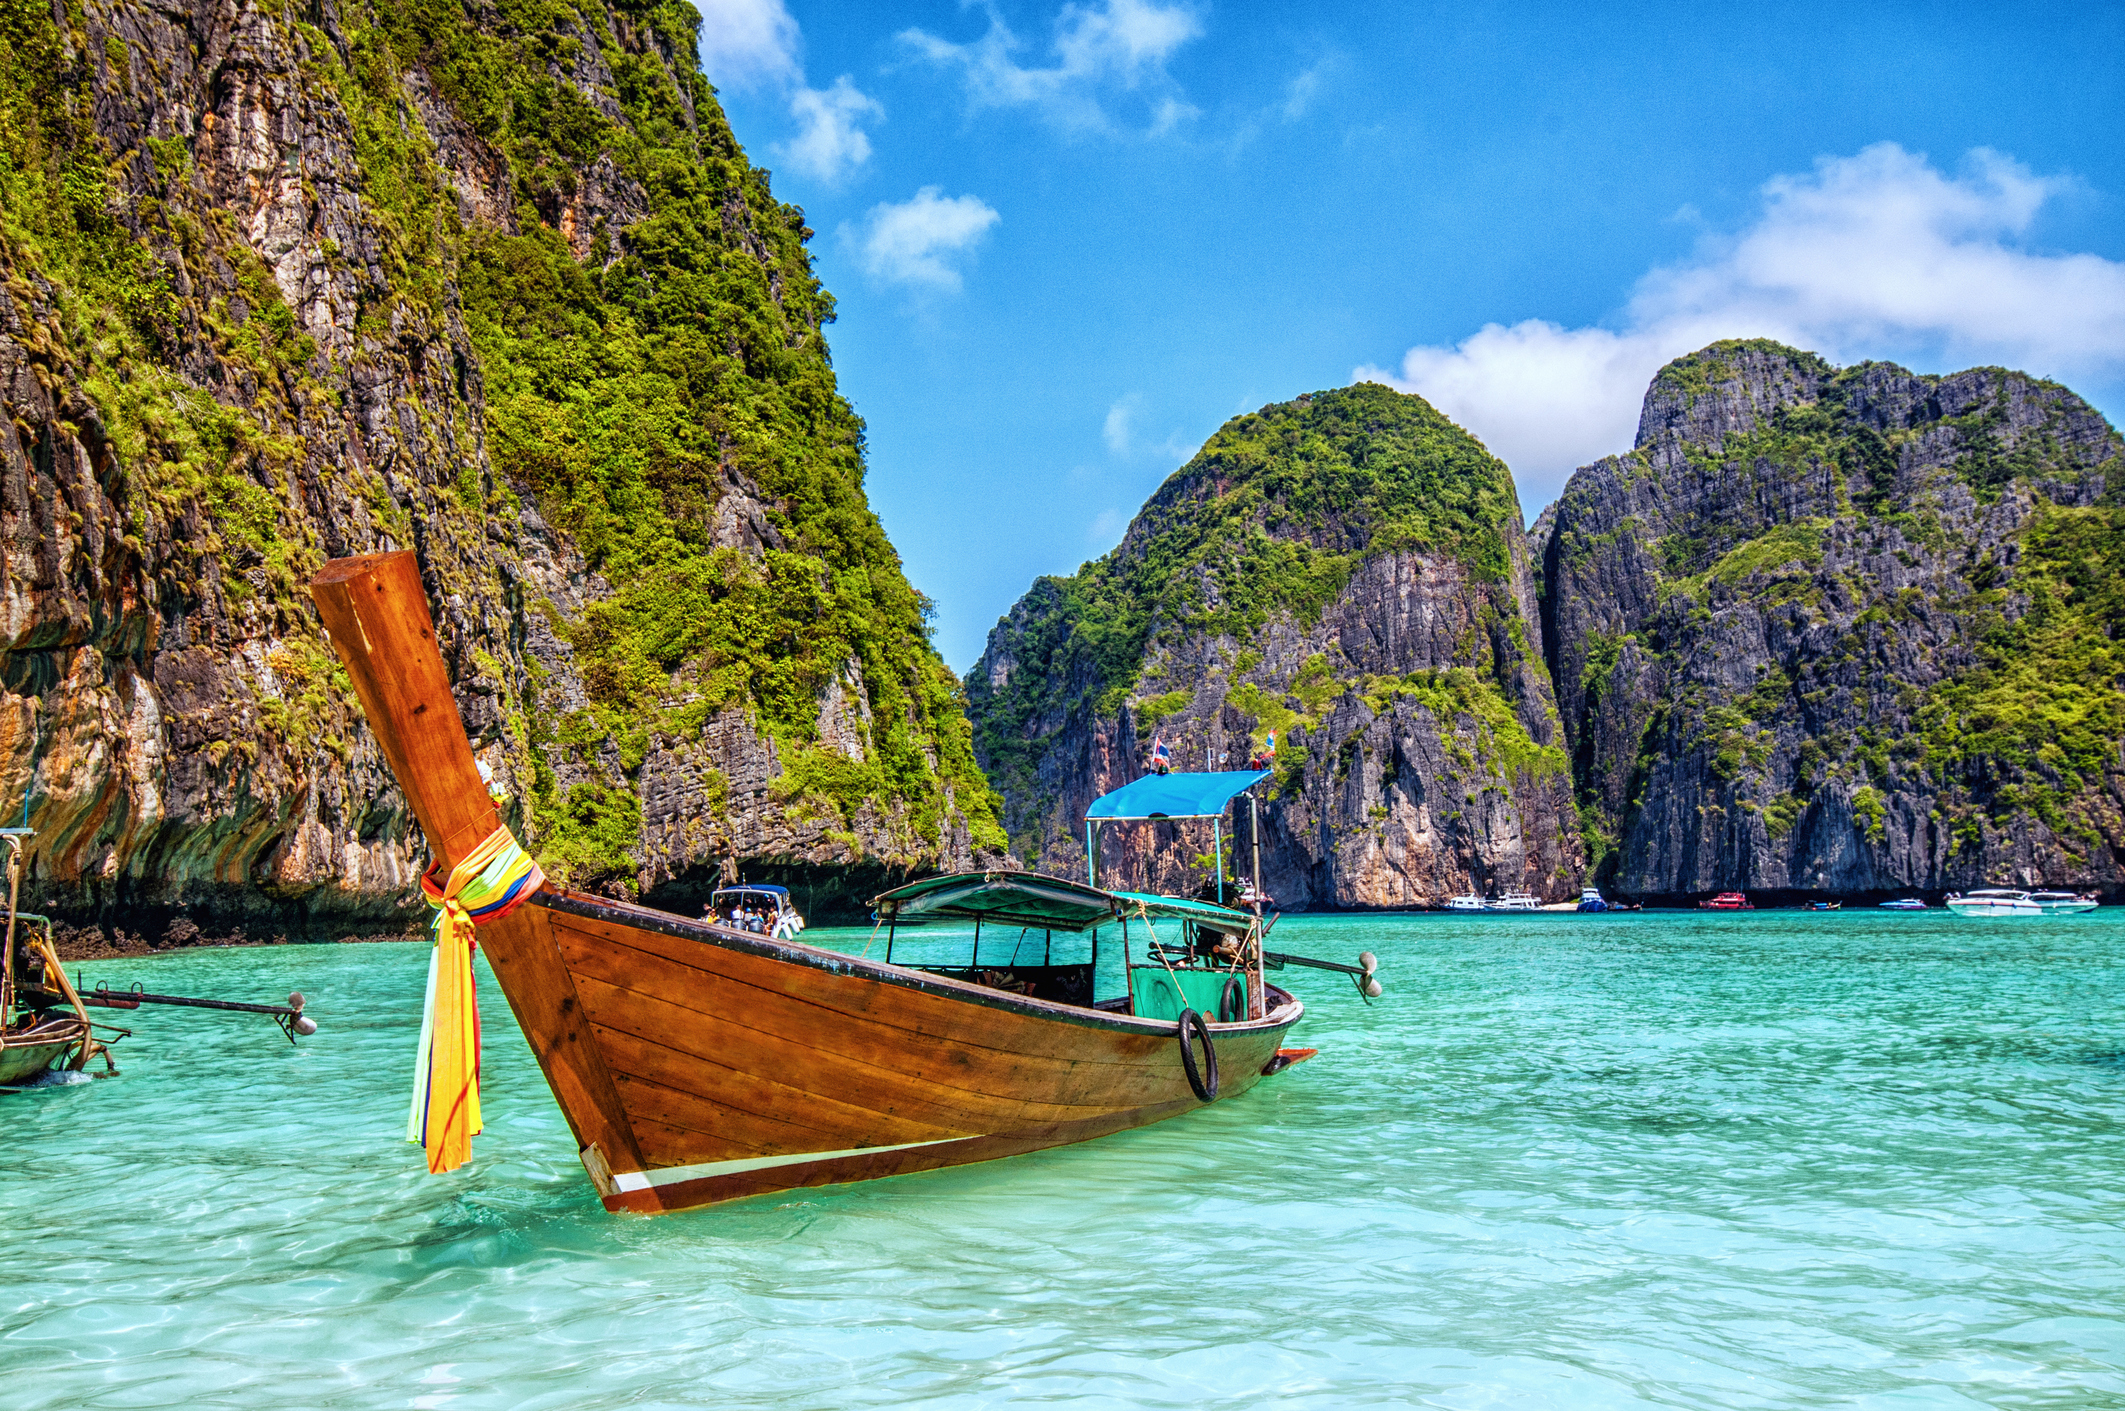 Thailand's Top Experiences: - 1. Squirting water guns at Chiang Mai's Songkran Festival2. Getting Scuba Certified on Koh Tao3. Cooking up your own Pad Thai with the help of a local chef